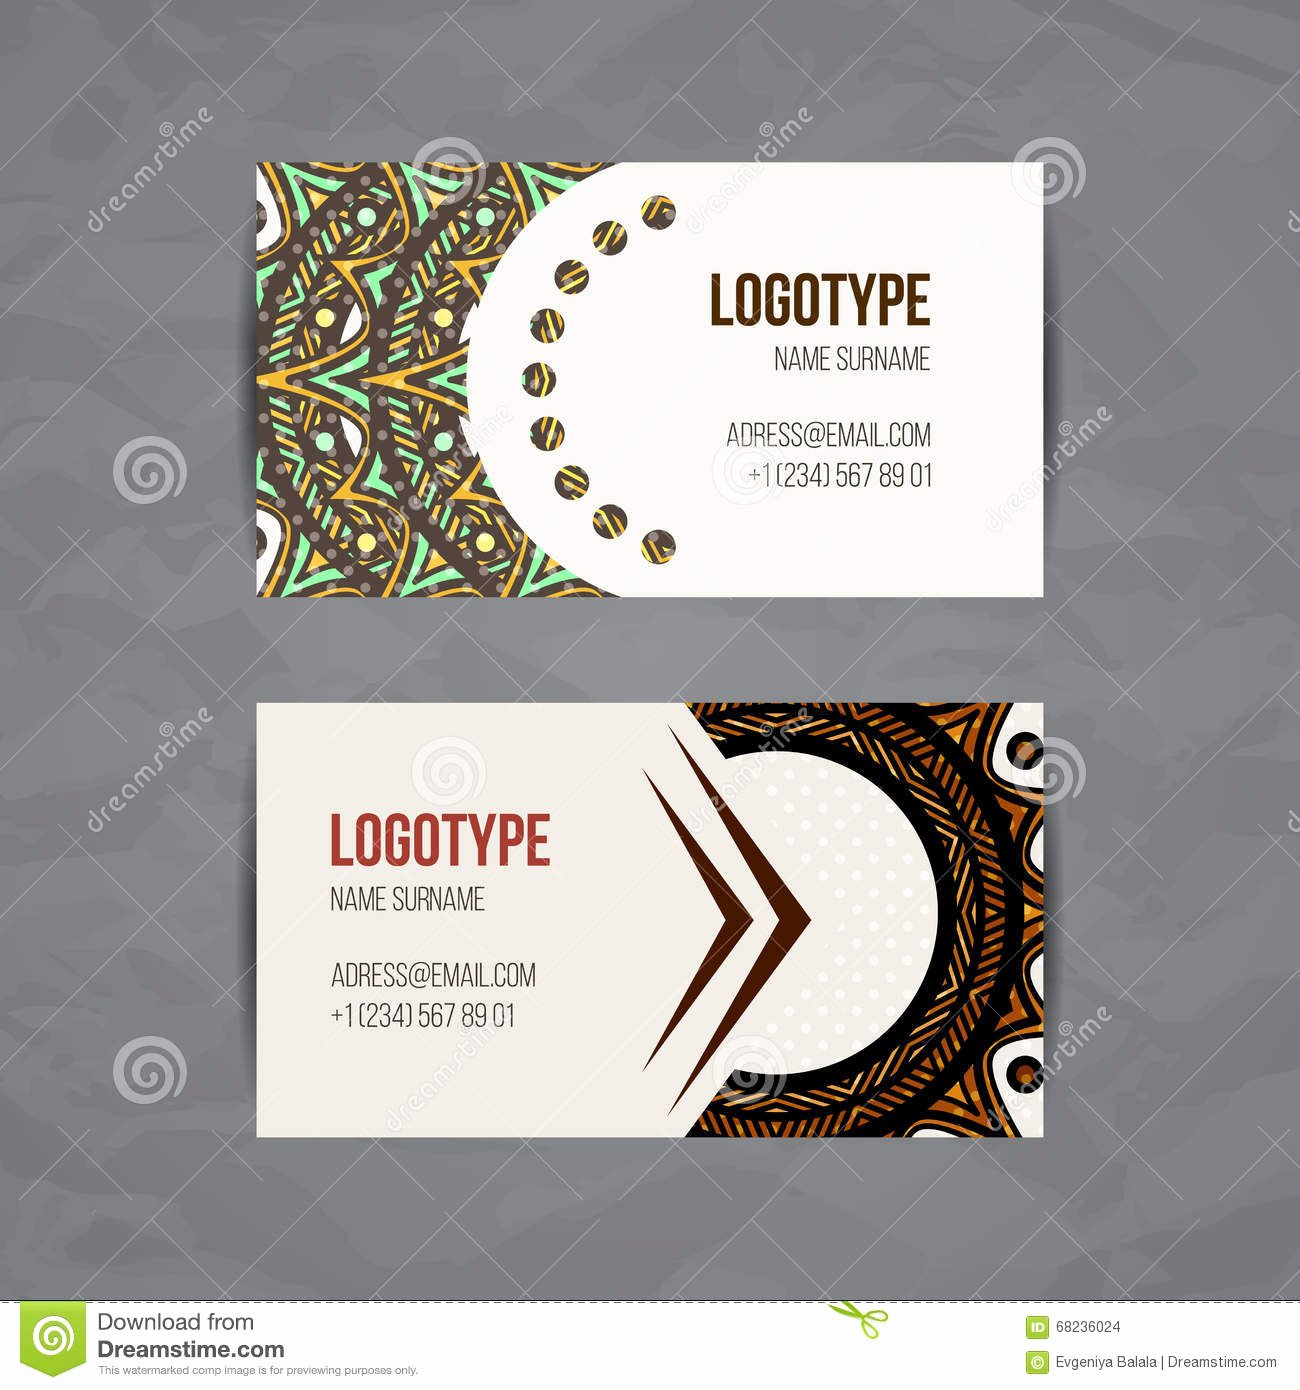 Circle Business Card Template Unique Set Vector Design Templates Business Card with Floral